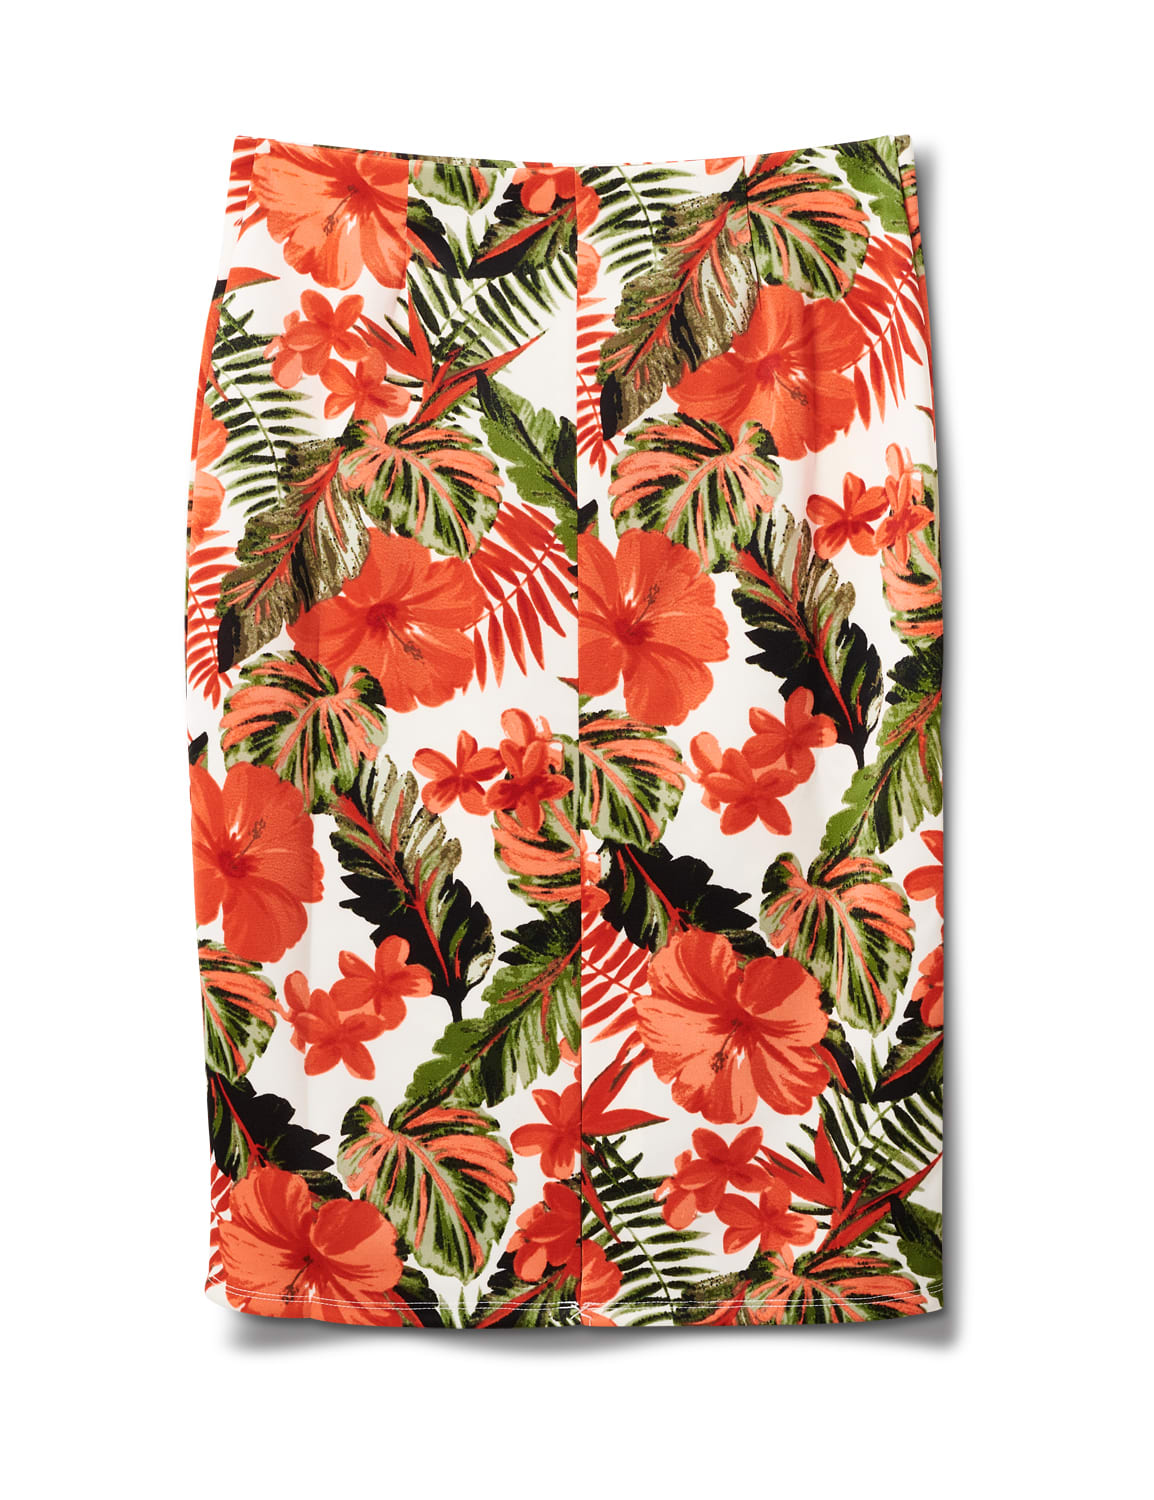 Printed Pull On  Floral Scuba Crepe Skirt - Sugar Swizzle/Spice isle - Back